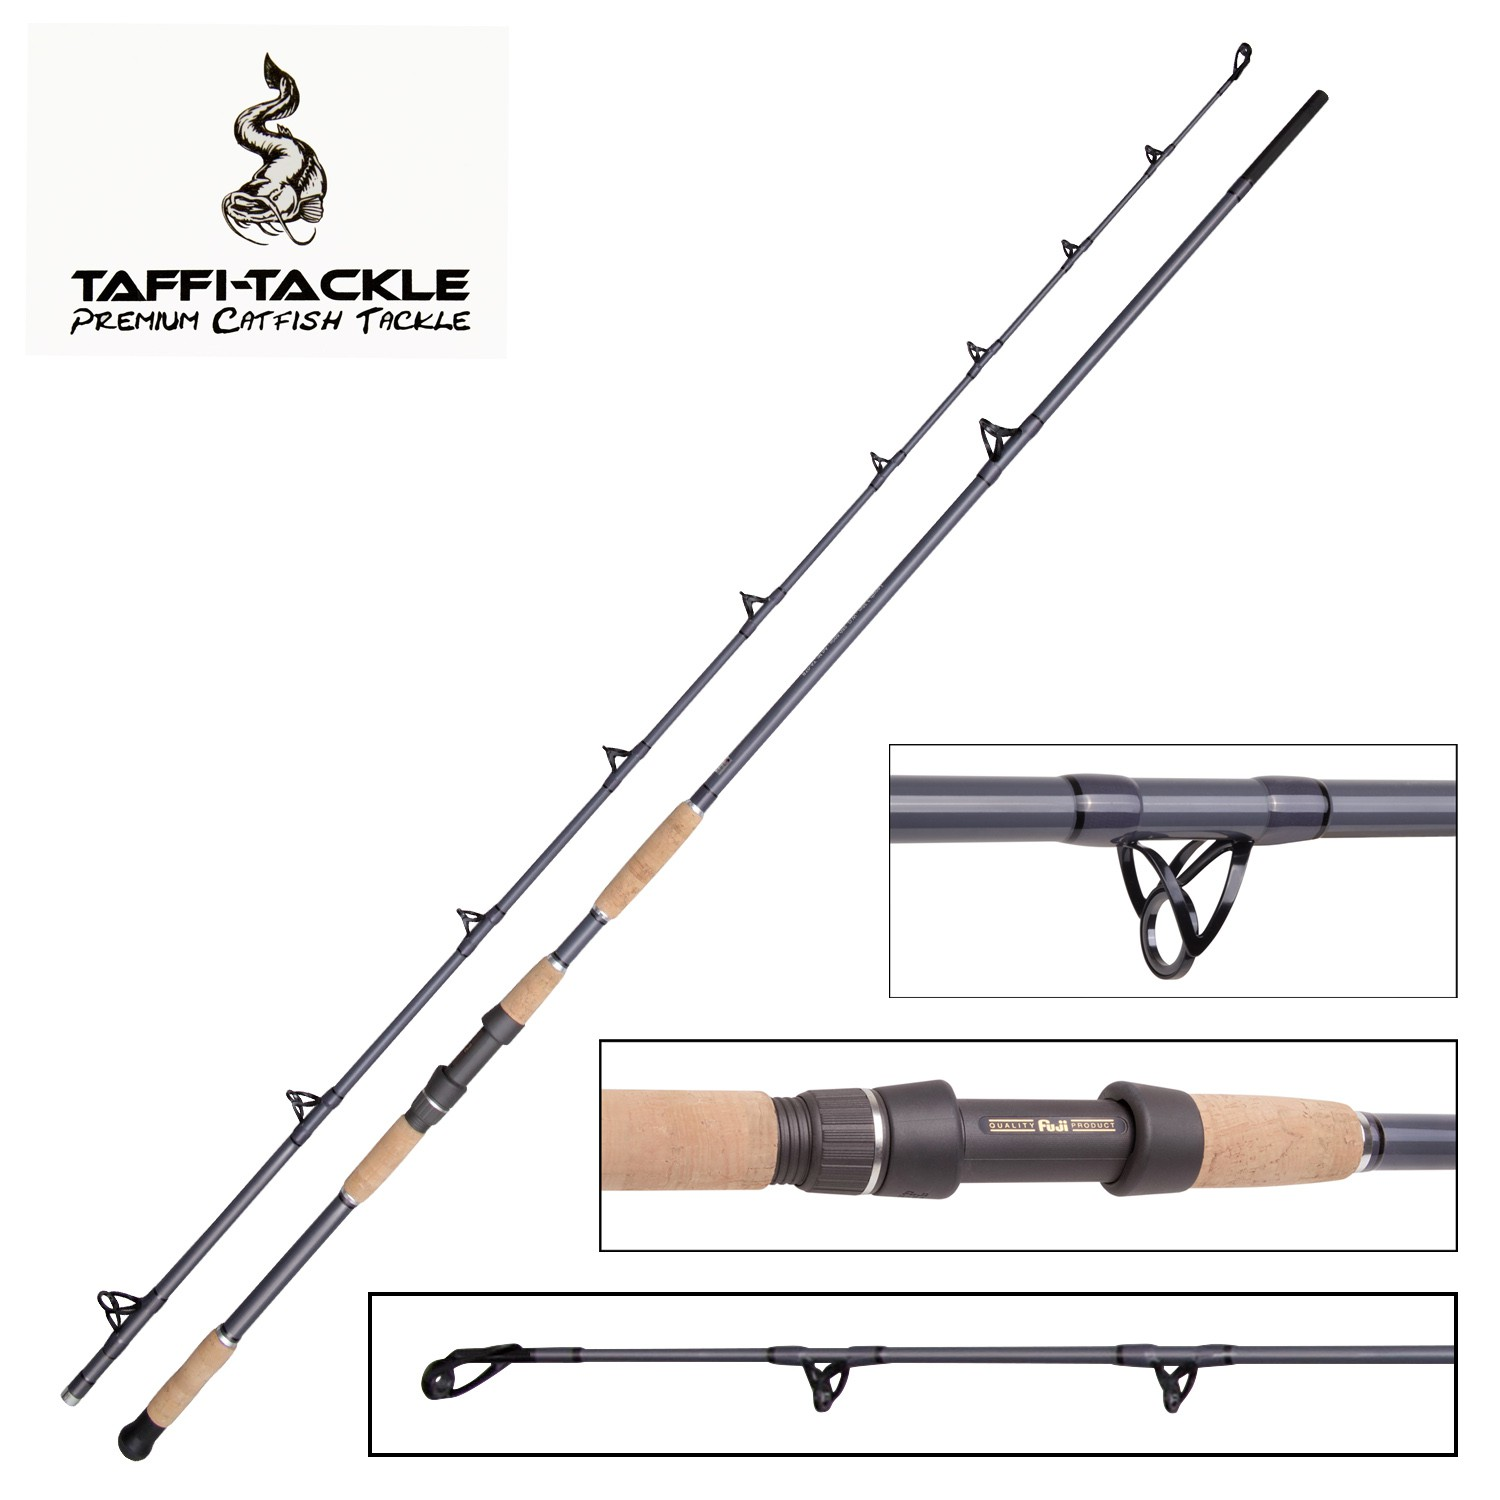 Fishing tackle unlimited online store taffi tackle for Fish and tackle unlimited